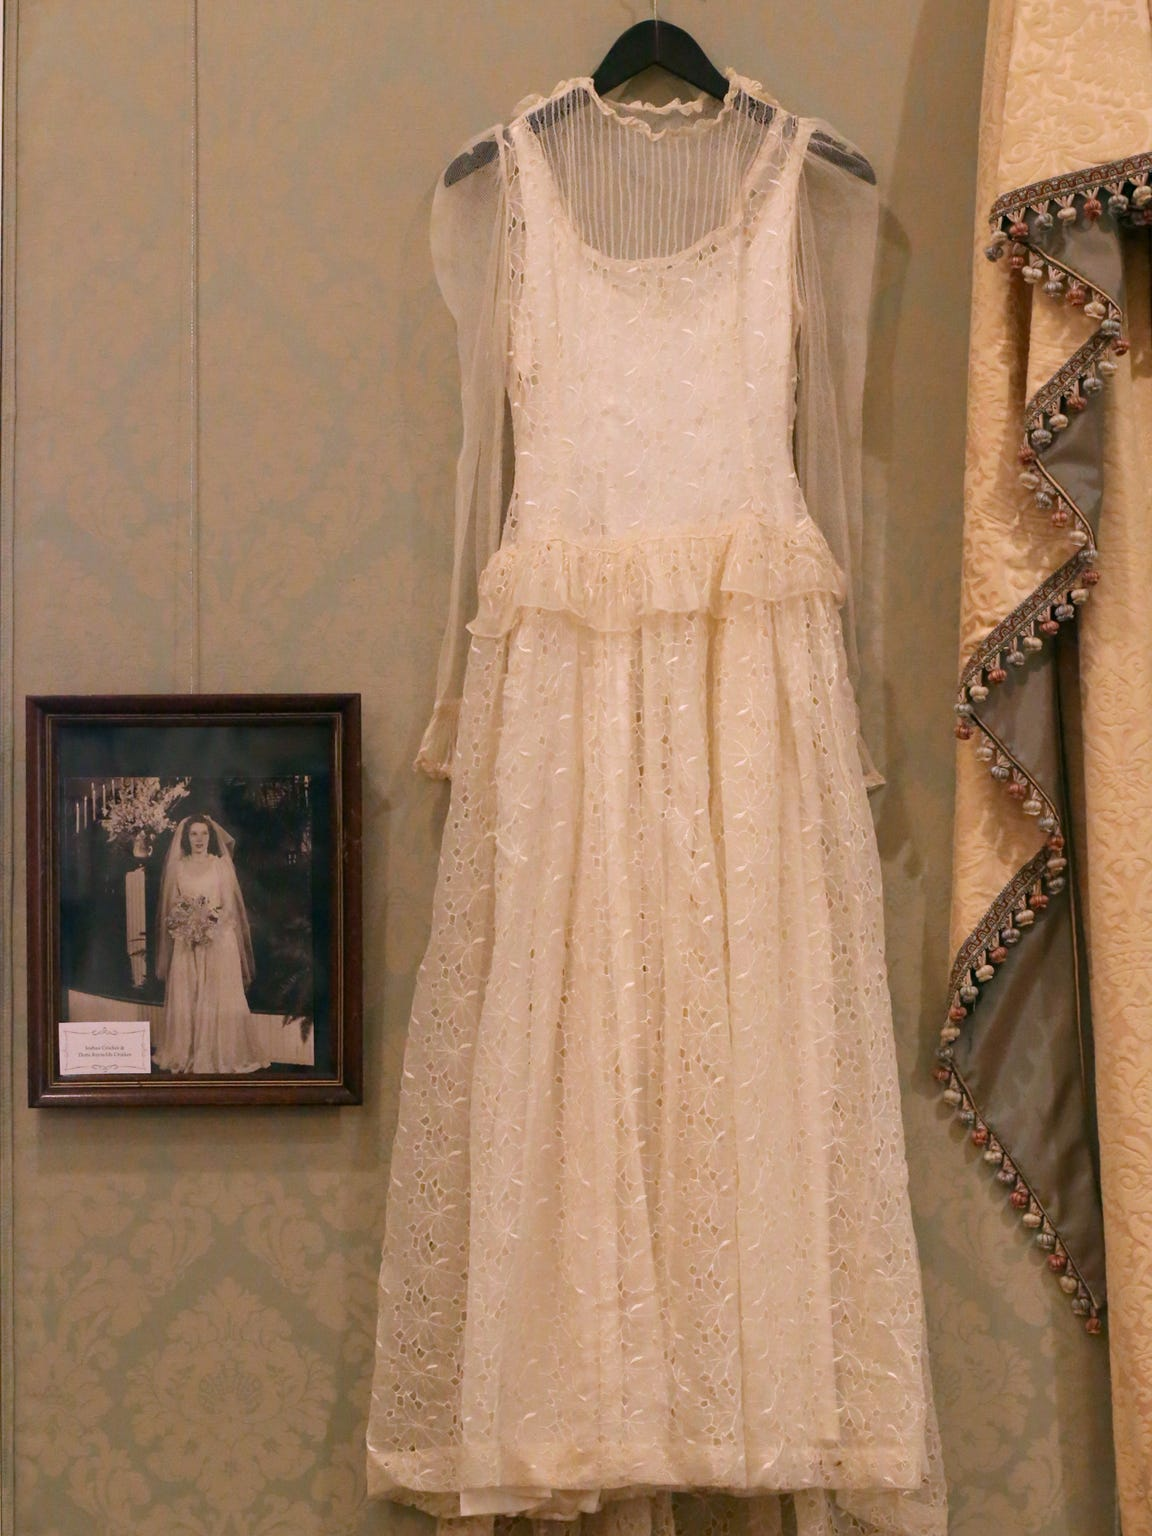 The late Doris Reynolds Crocker wore a handmade dress to her wedding. She is the mother of Oaklands Association treasurer Mark Crocker. The gown is featured in the 'Wedding Dresses Through the Decades' exhibit.